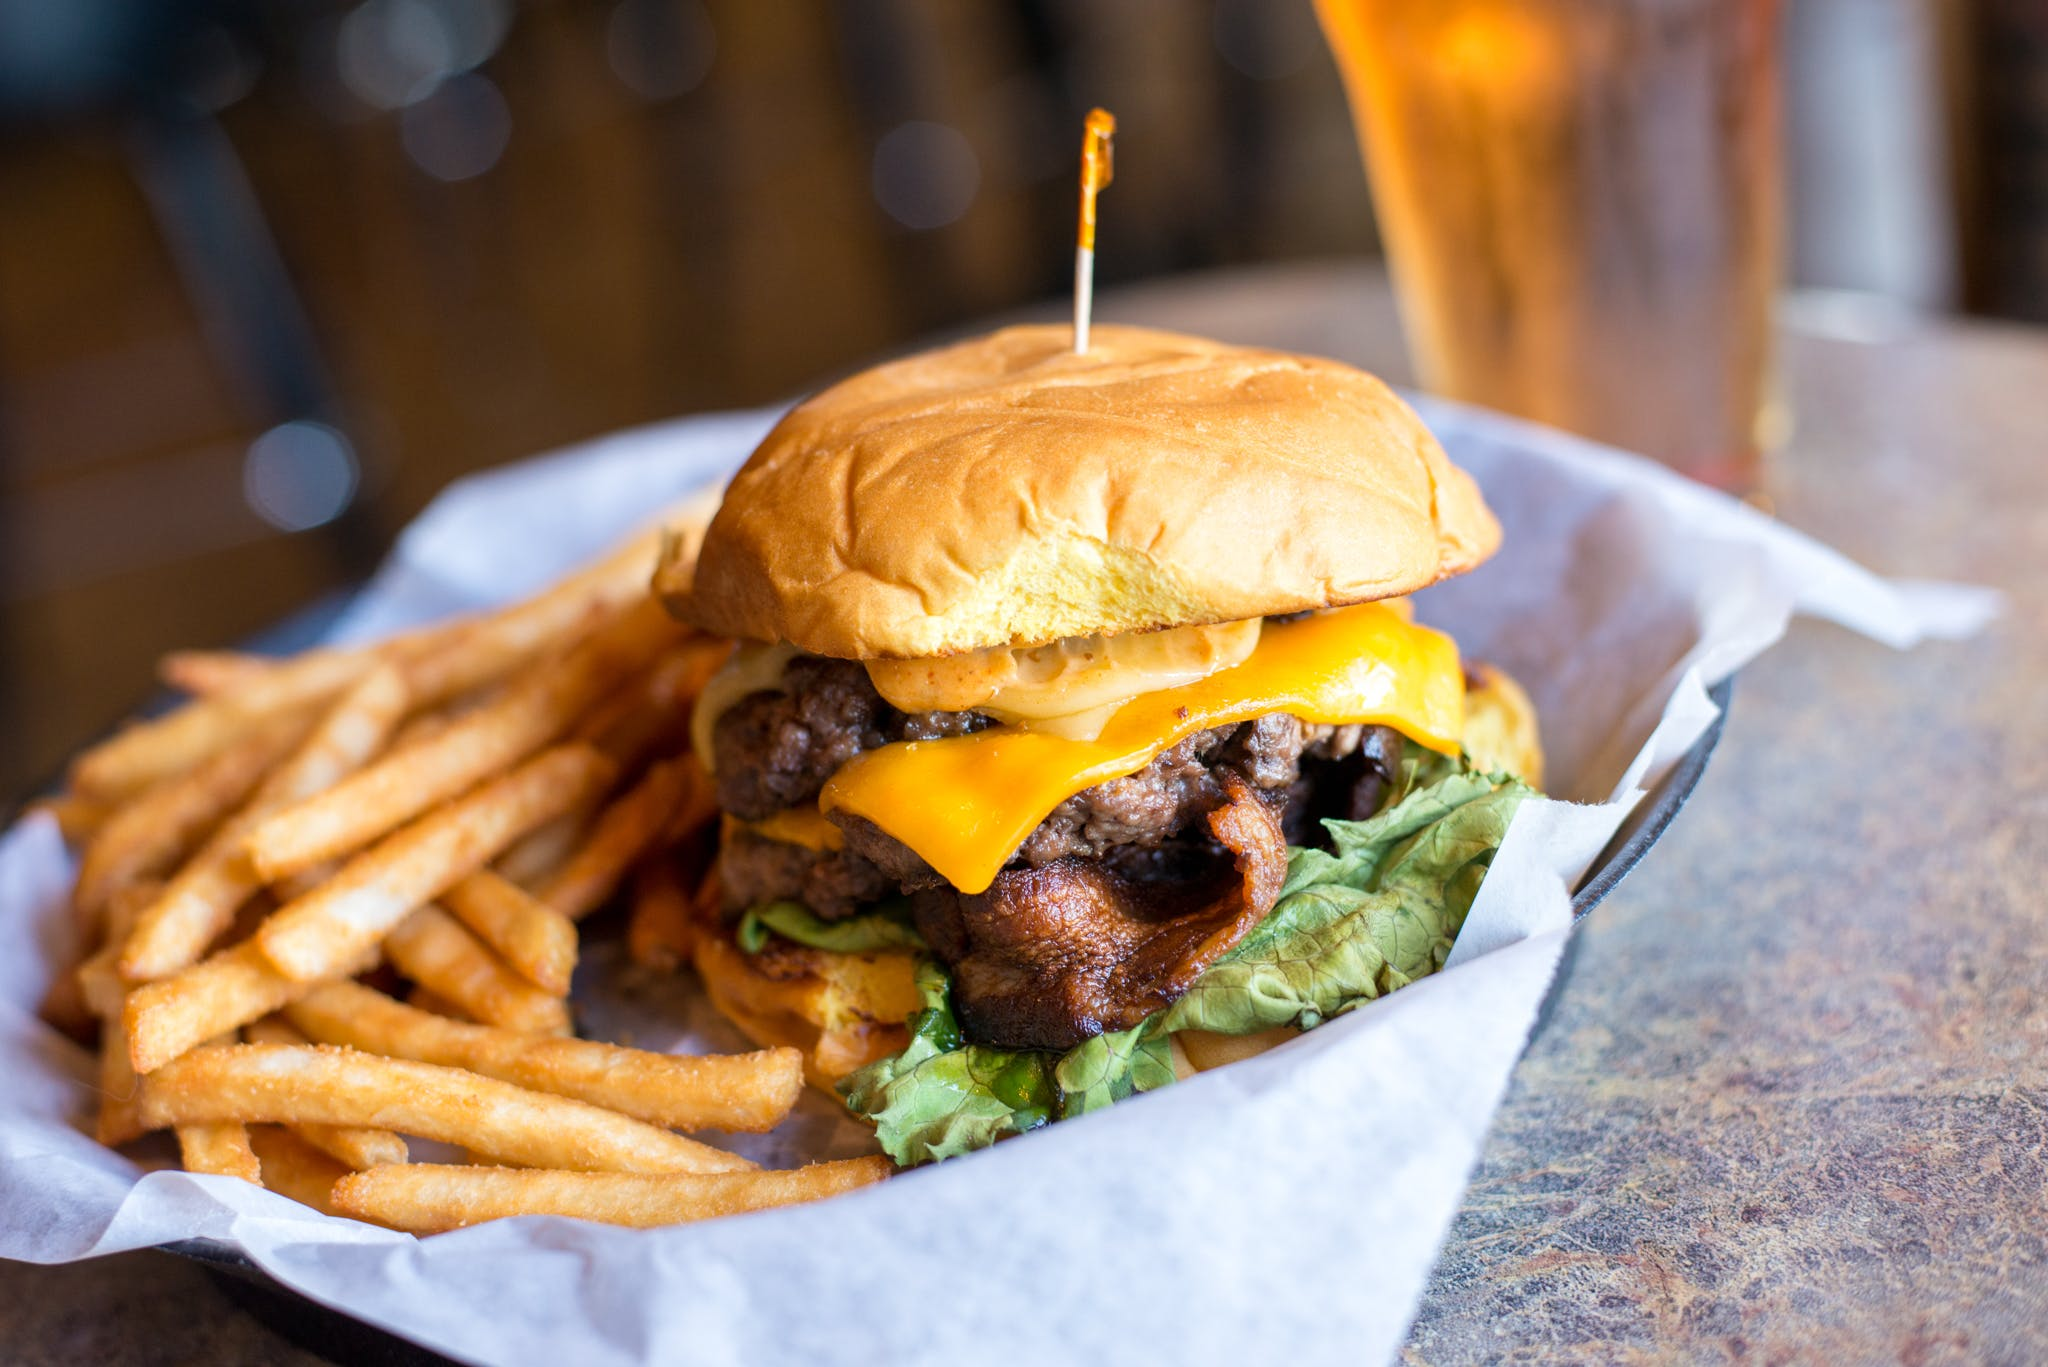 Bacon Cheese from Brickhouse Craft Burgers & Brews in De Pere, WI